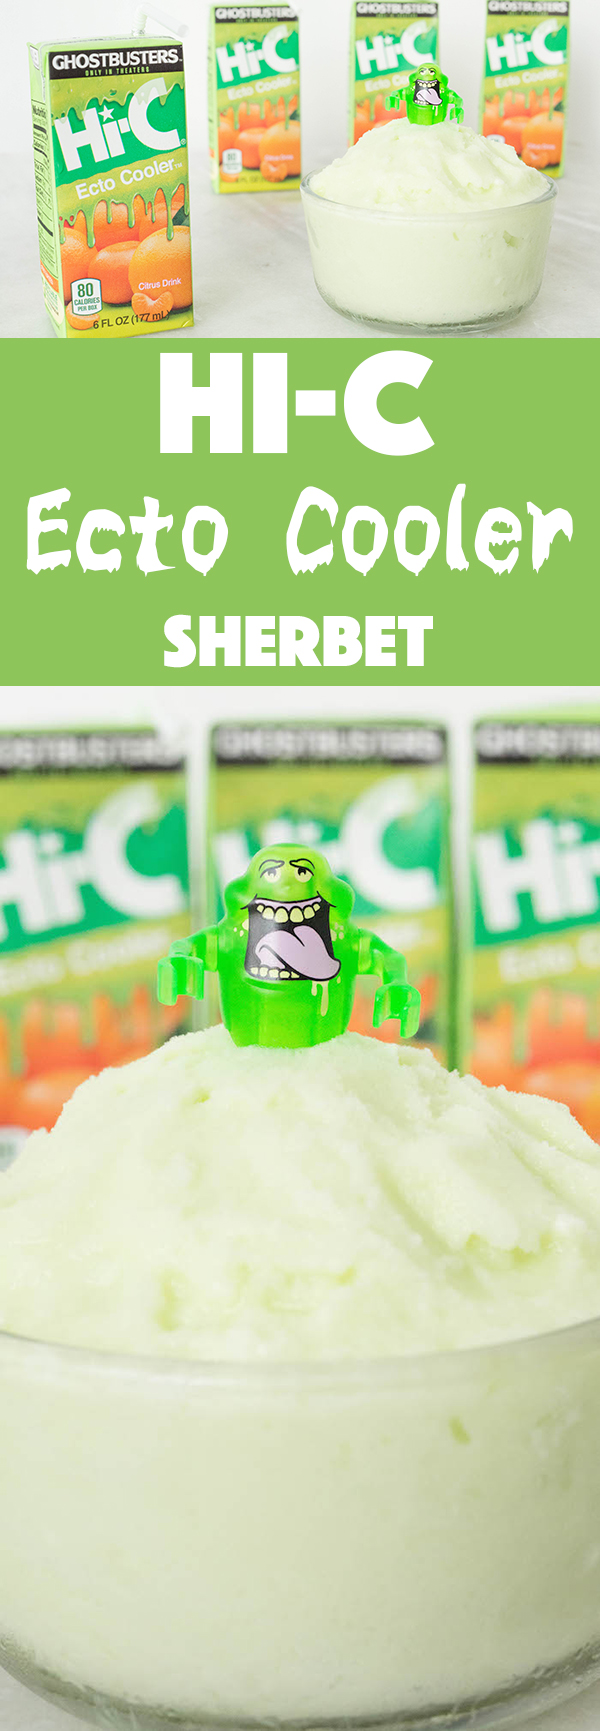 Hi-C Ecto Cooler is back for the new Ghostbusters movie. We turn it into Ecto Cooler Sherbet Ice Cream with this easy to follow recipe.